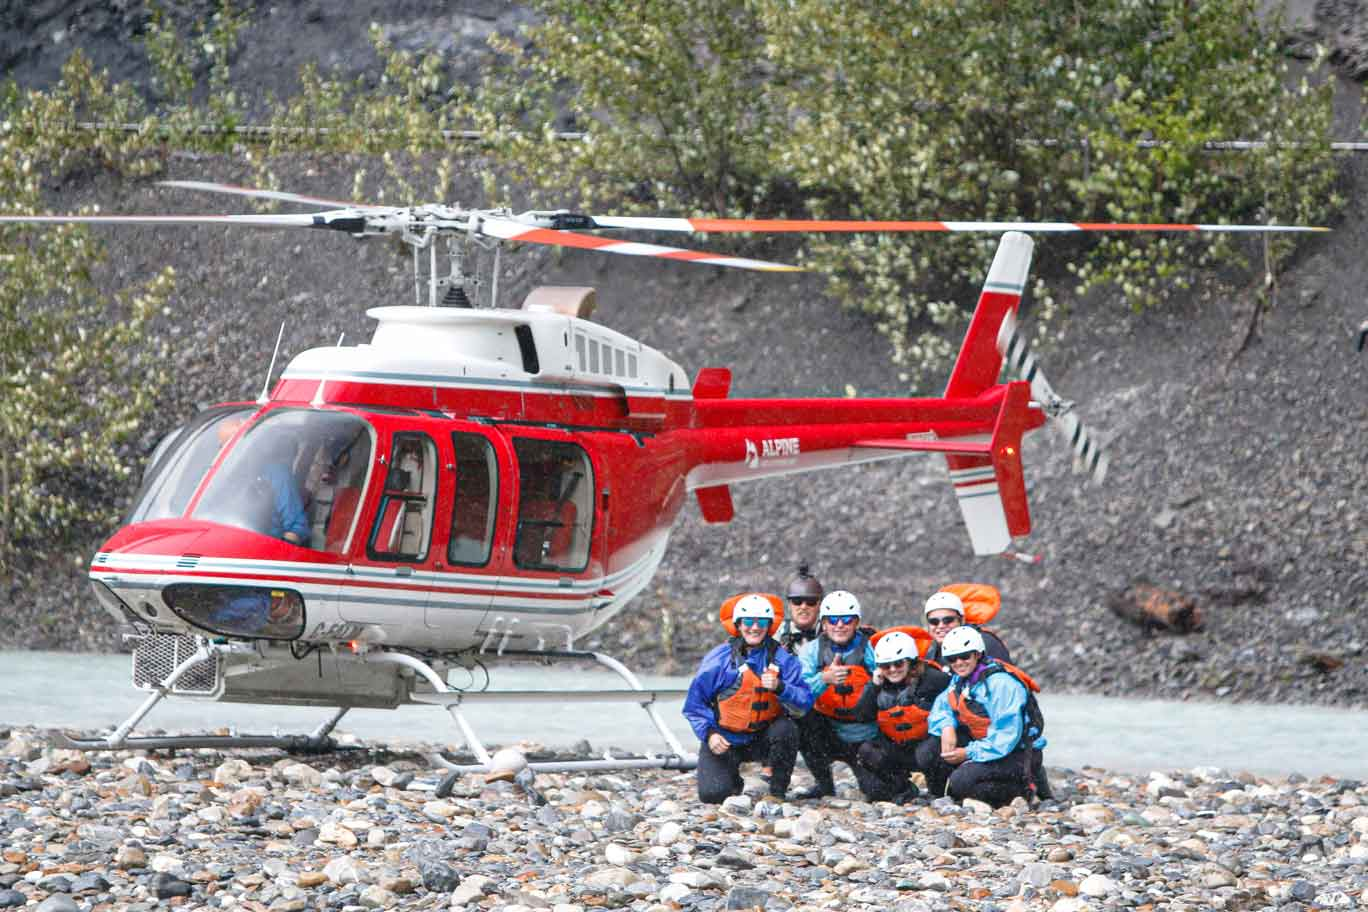 A group of rafters crouch near a helicopter, awaiting transport to the next section of river